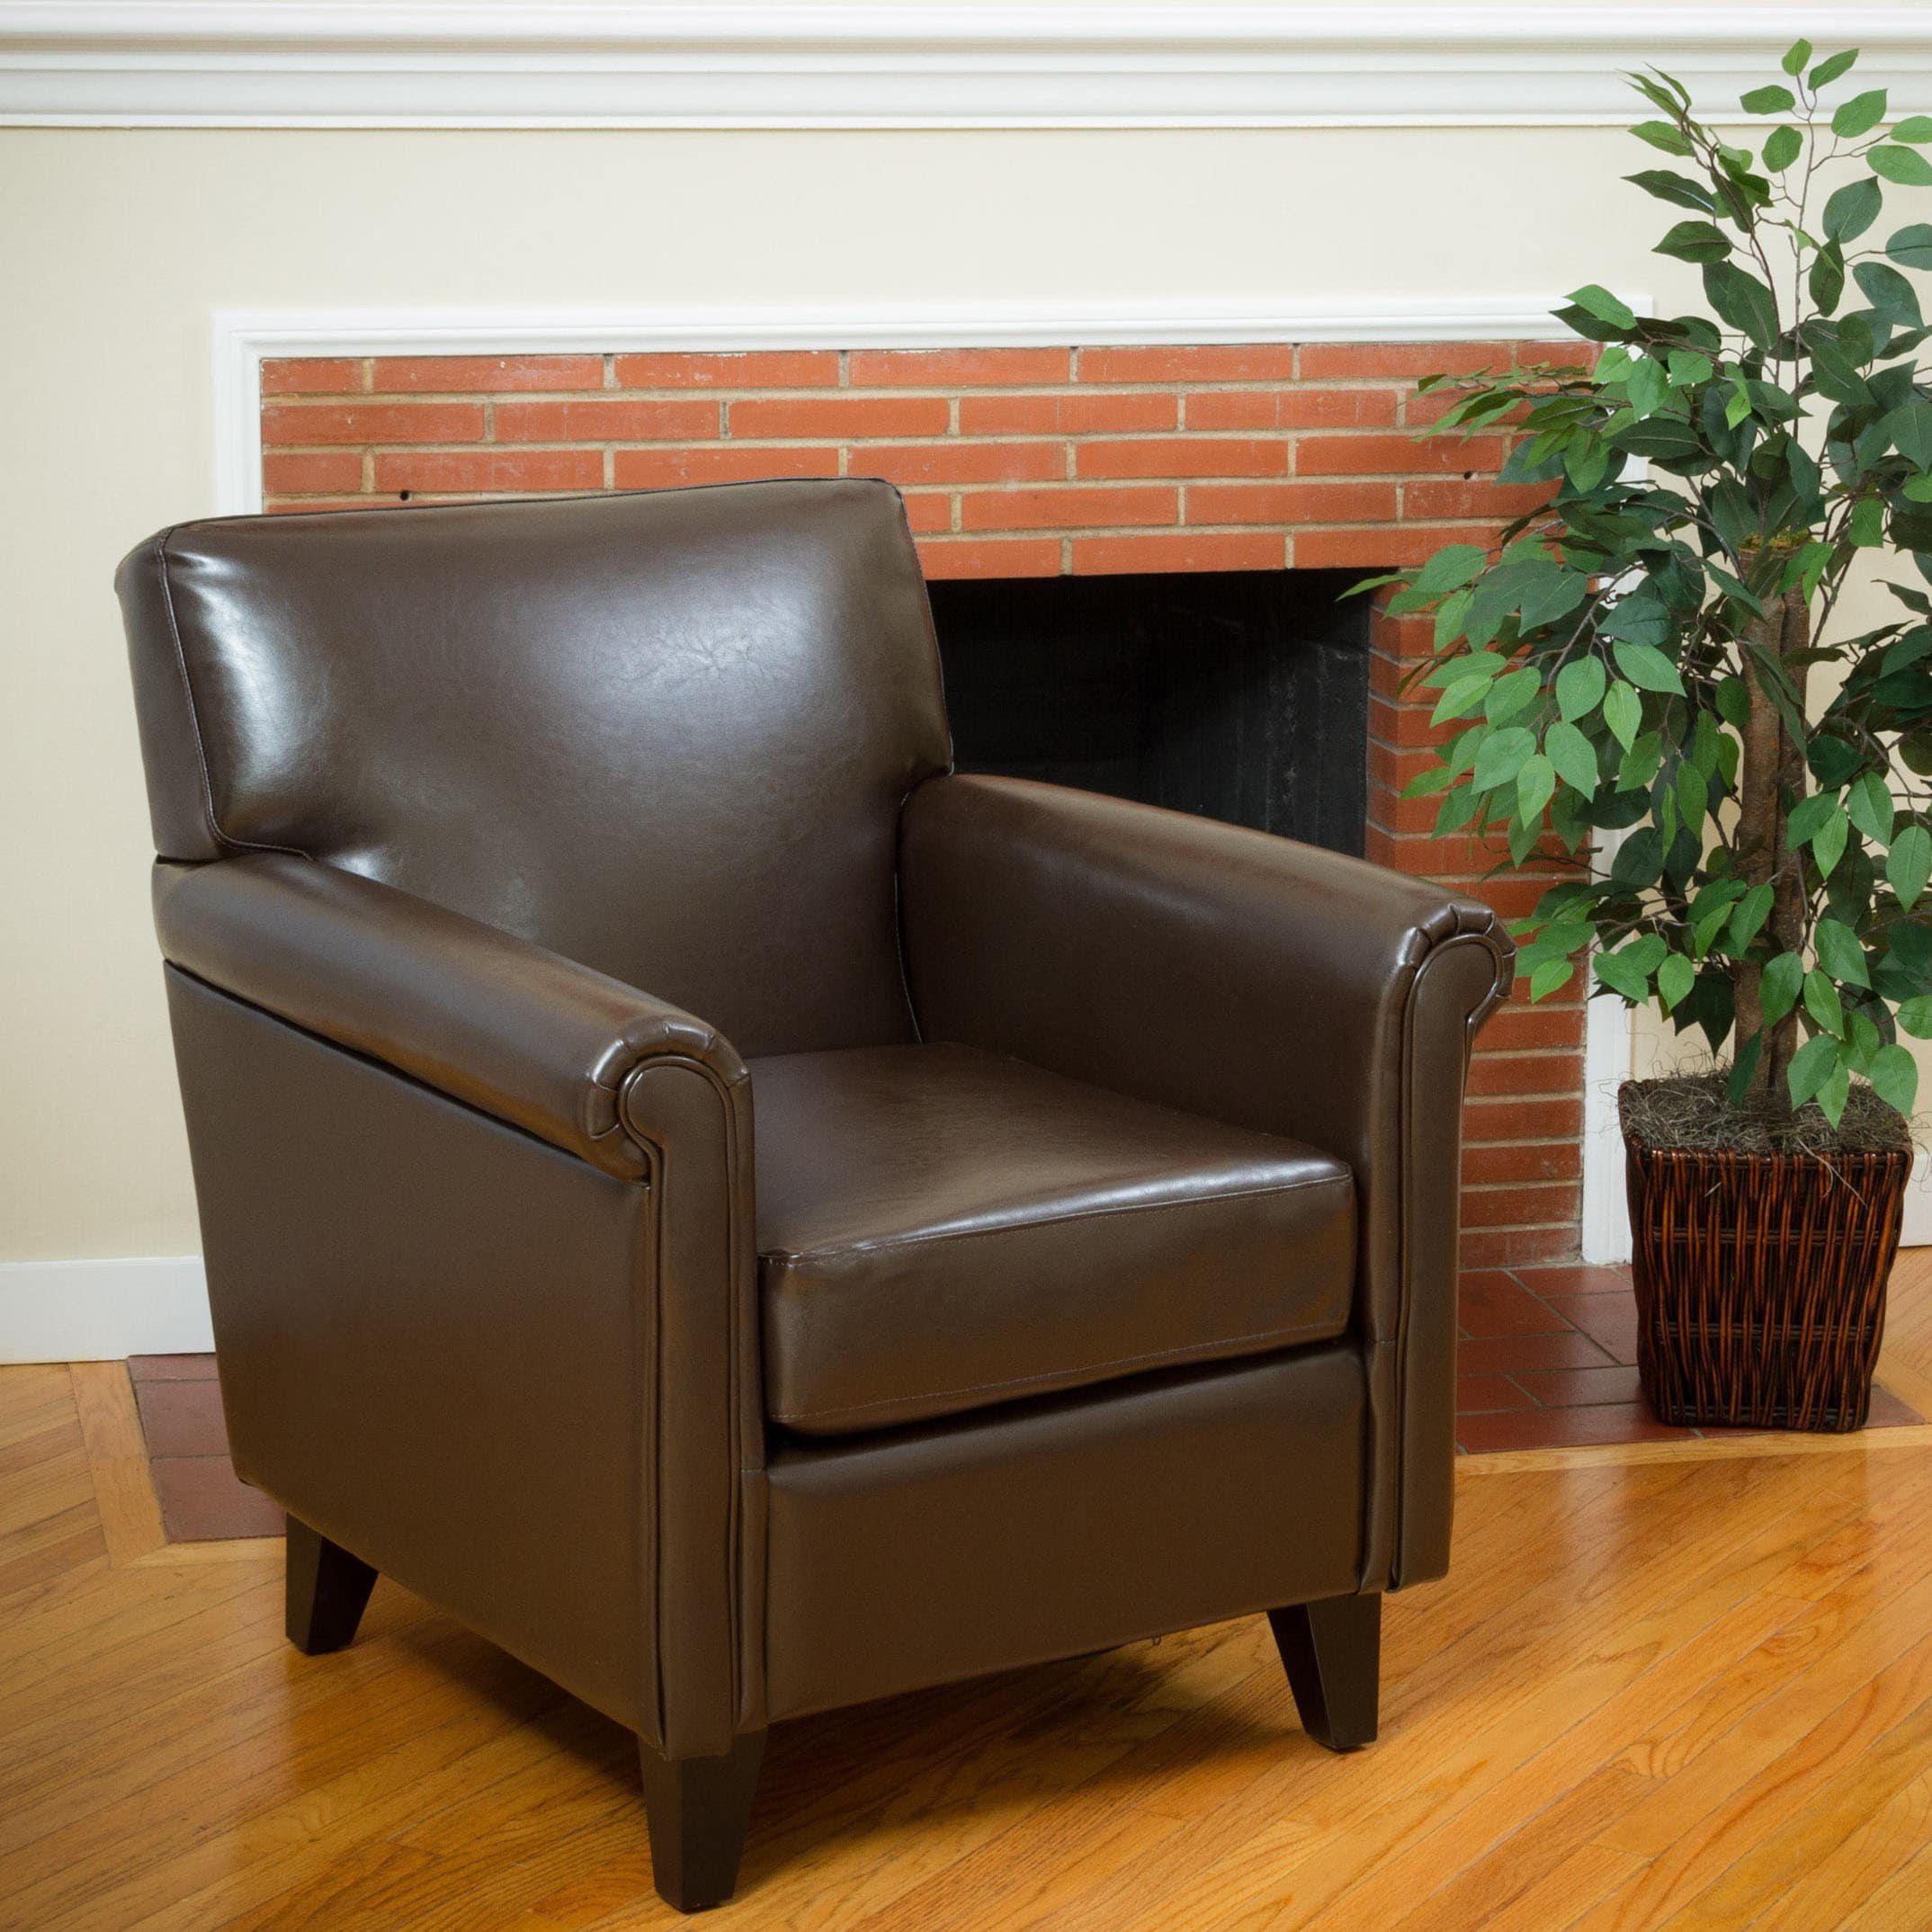 Christopher Knight Home Leeds Classic Brown Bonded Leather Club Chair by by Overstock